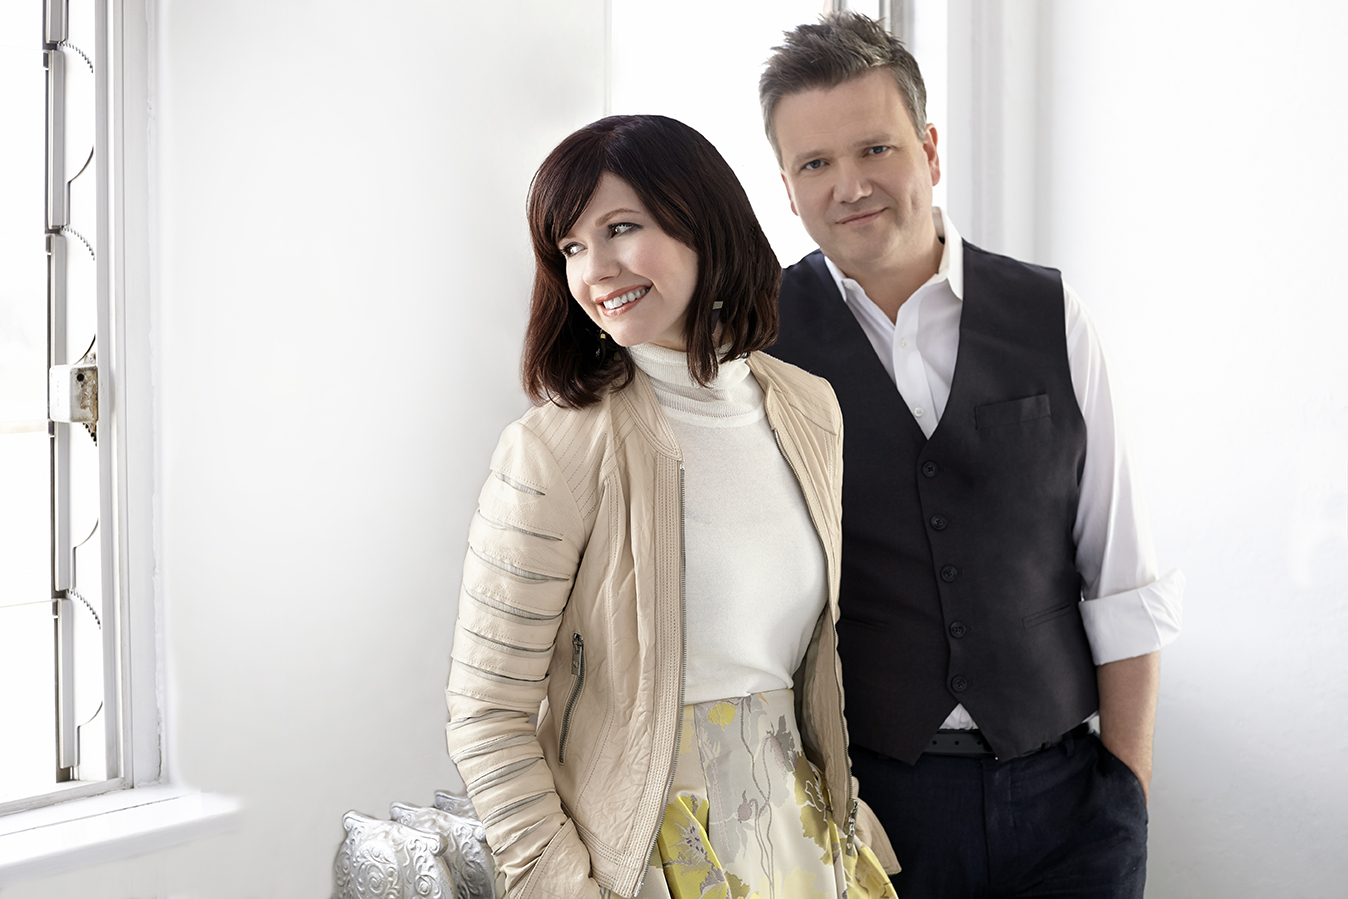 The Gateway Gala will feature a worship concert by Keith and Kristyn Getty.